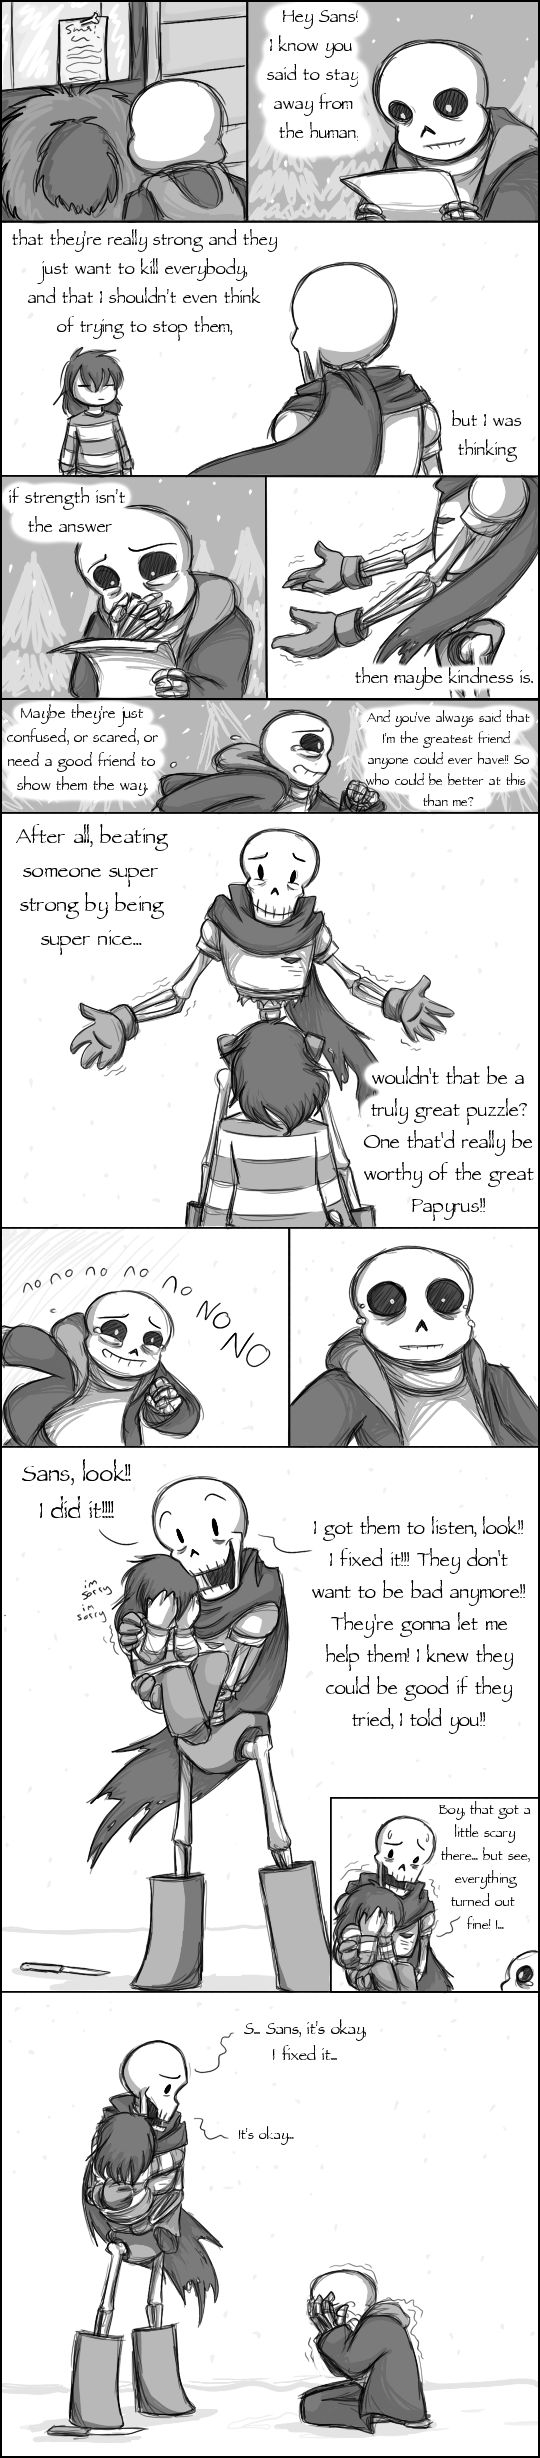 Oh my god, my feels were just murdered T^T Sans, Papyrus, & Frisk - Undertale